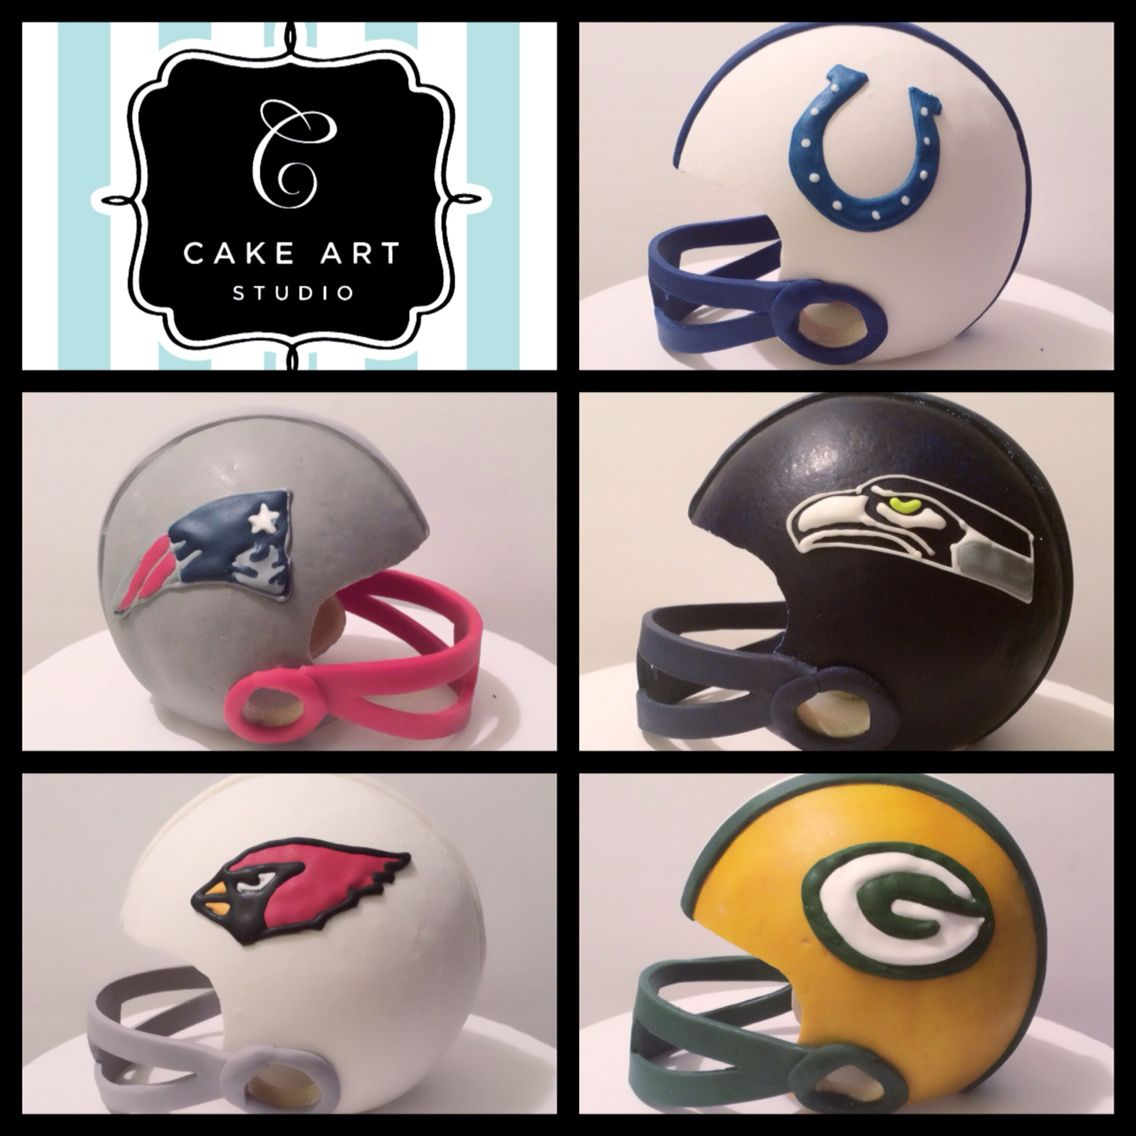 Now you can find your favorite team cookie Helmet at AJ's